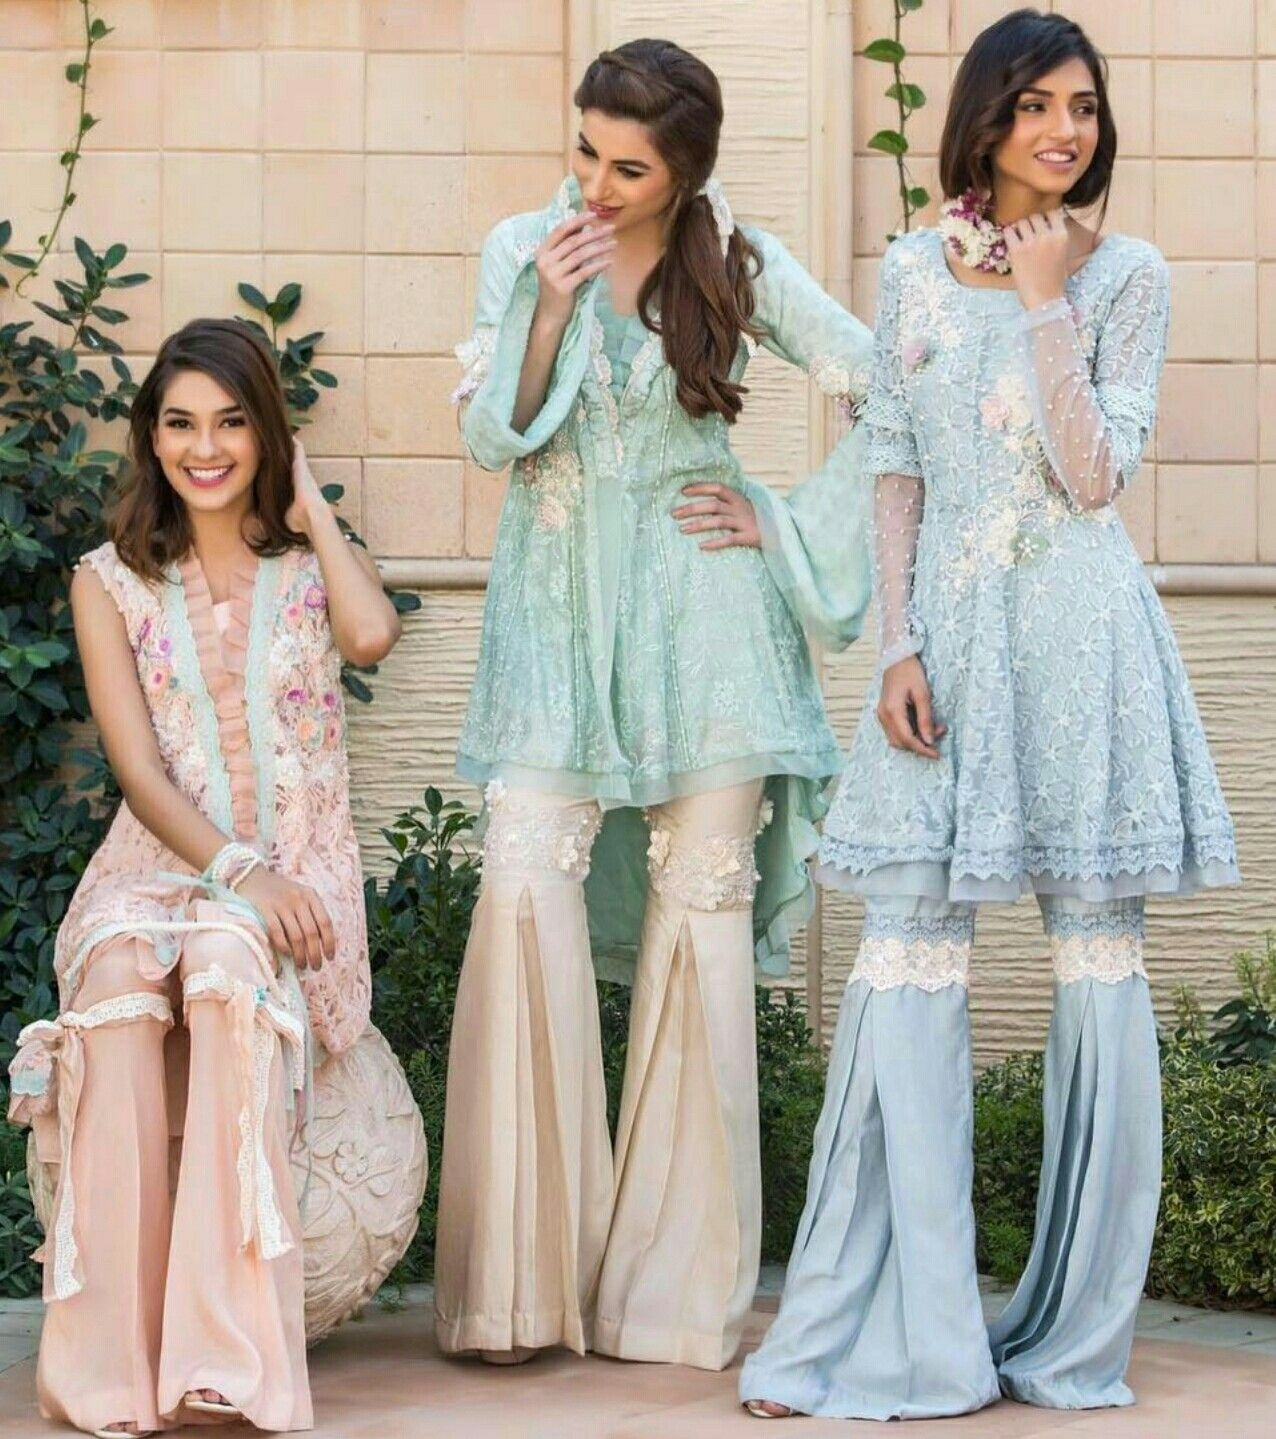 Pin by Zainab Chauhan on Clothes!!!! | Pinterest | Pakistani, Summer ...